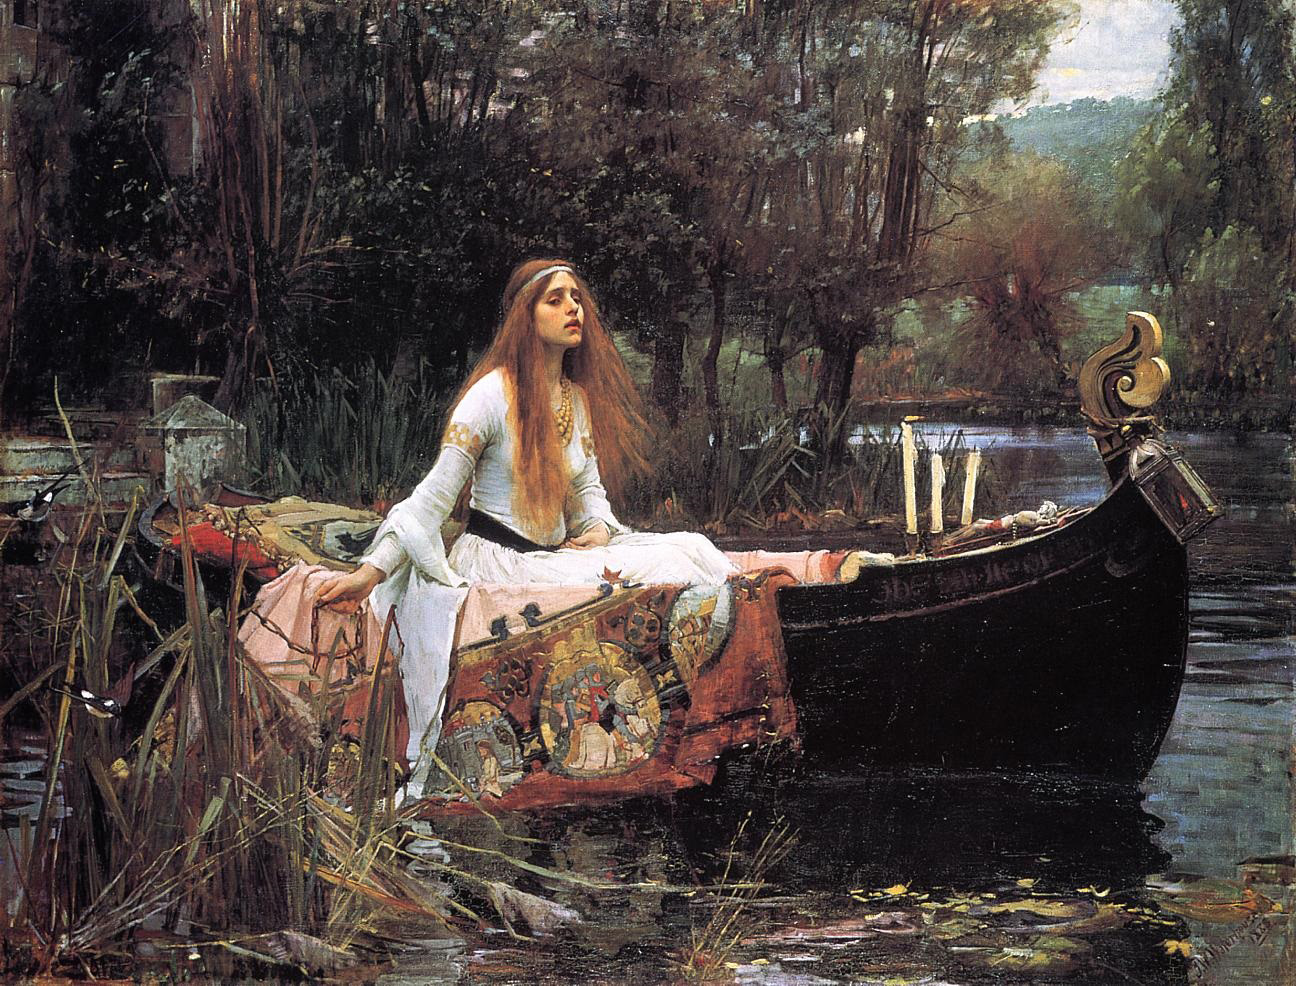 The Lady of Shallot, av John William Waterhouse, 1888